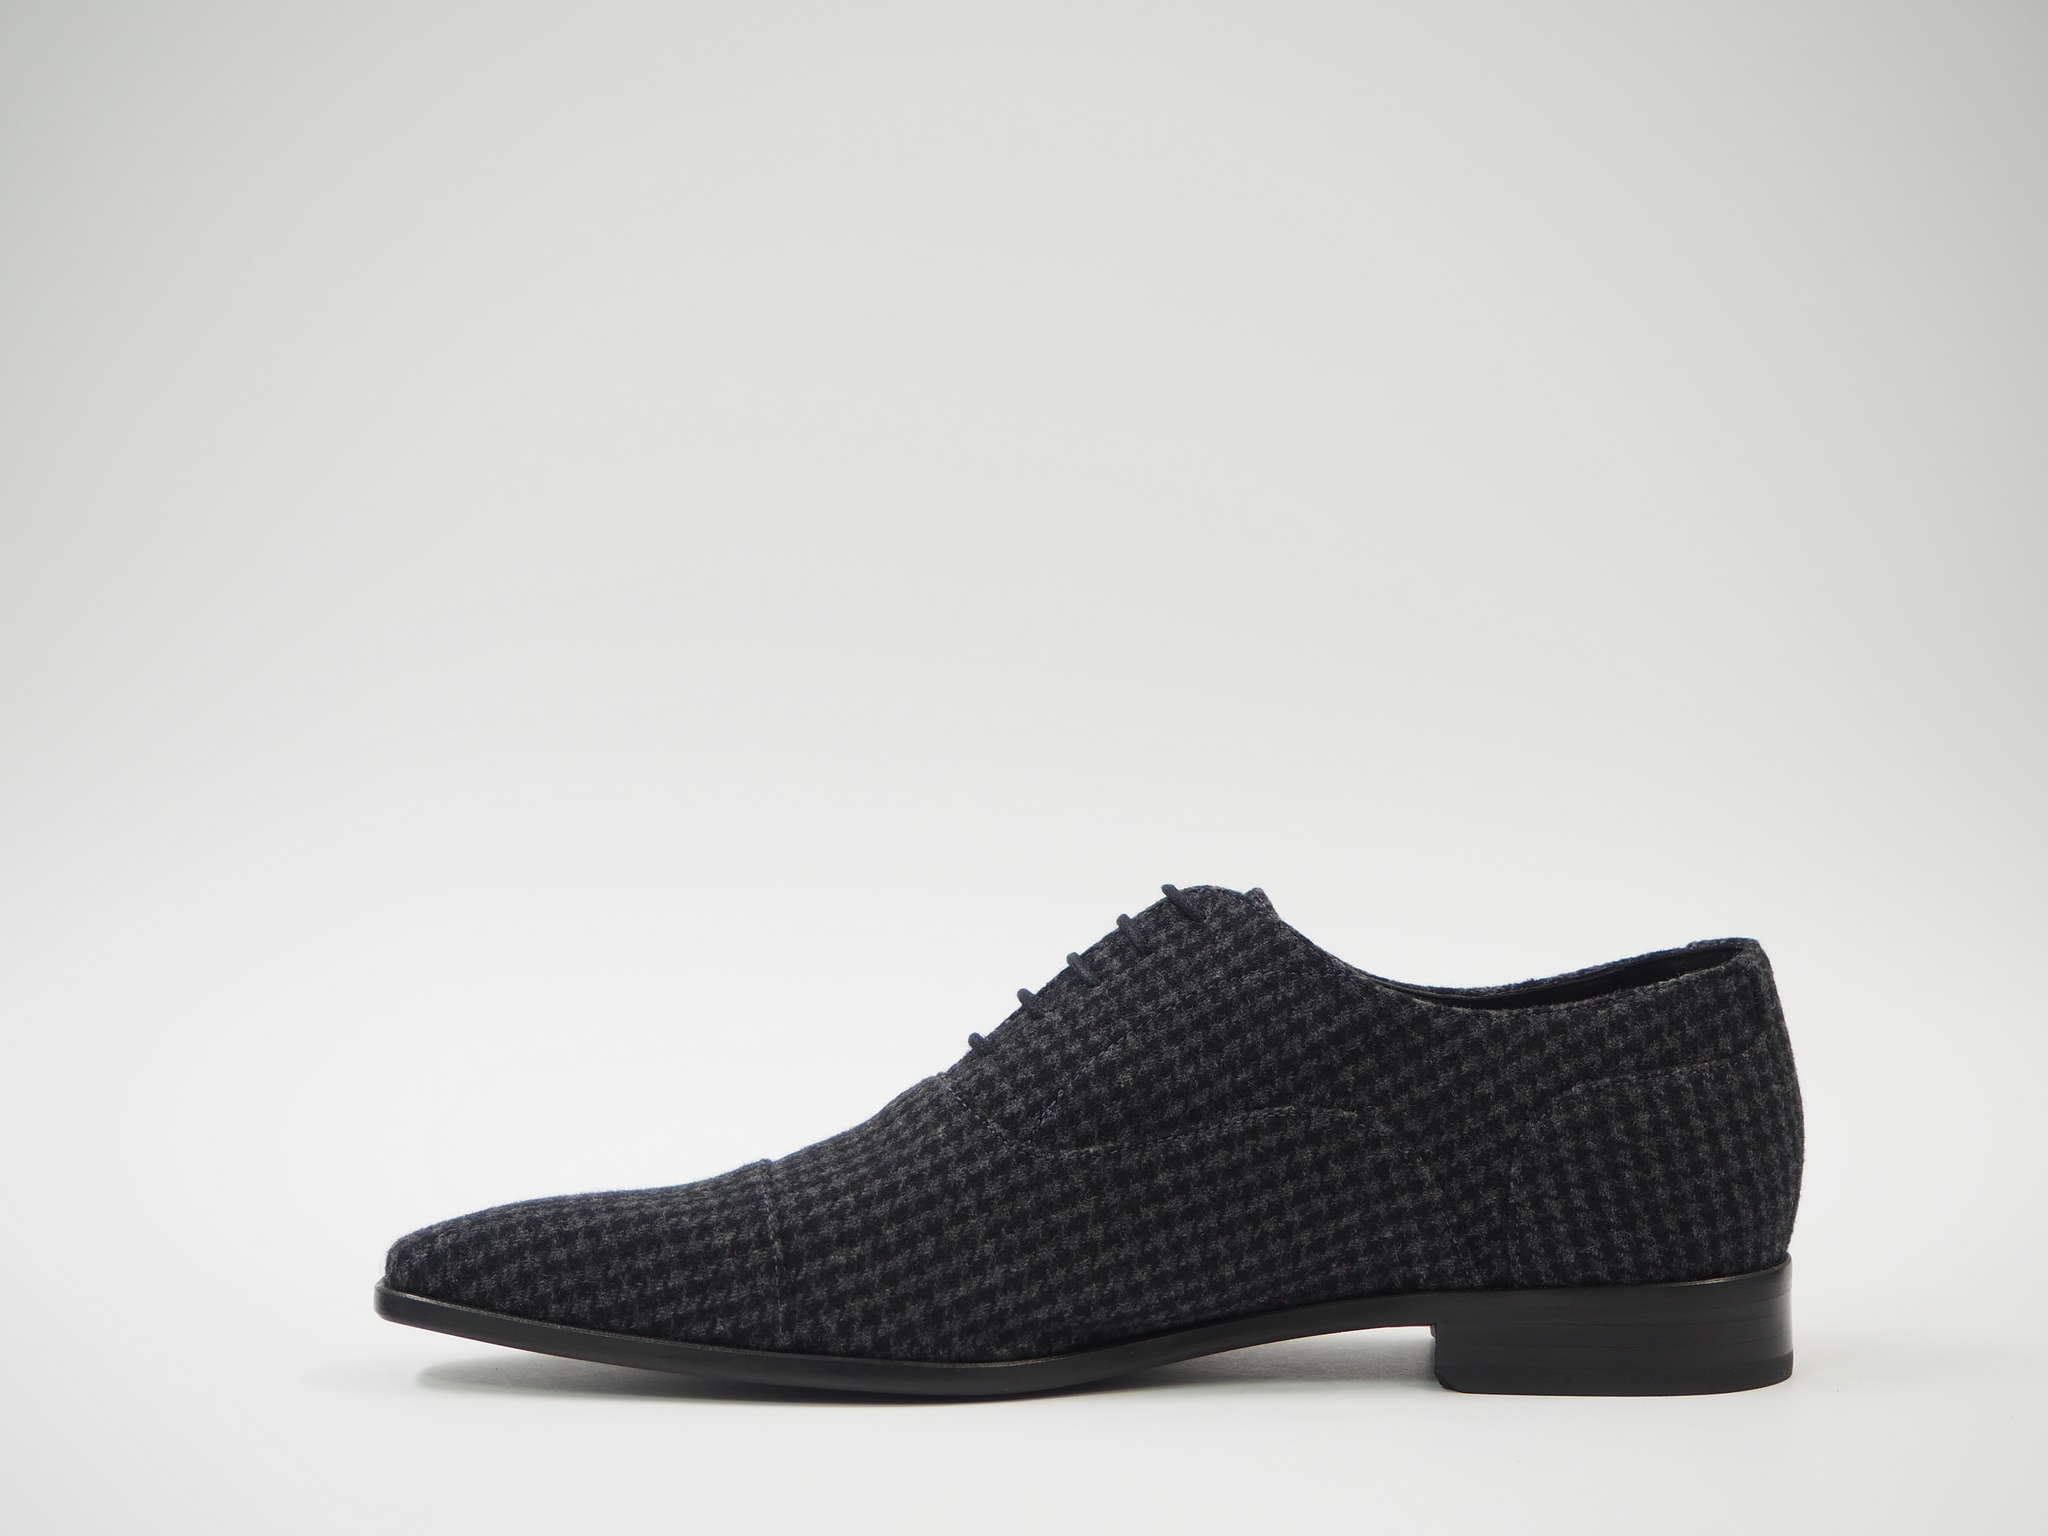 Size 45 - Gray & Black Pied de Poule Oxford + Belt